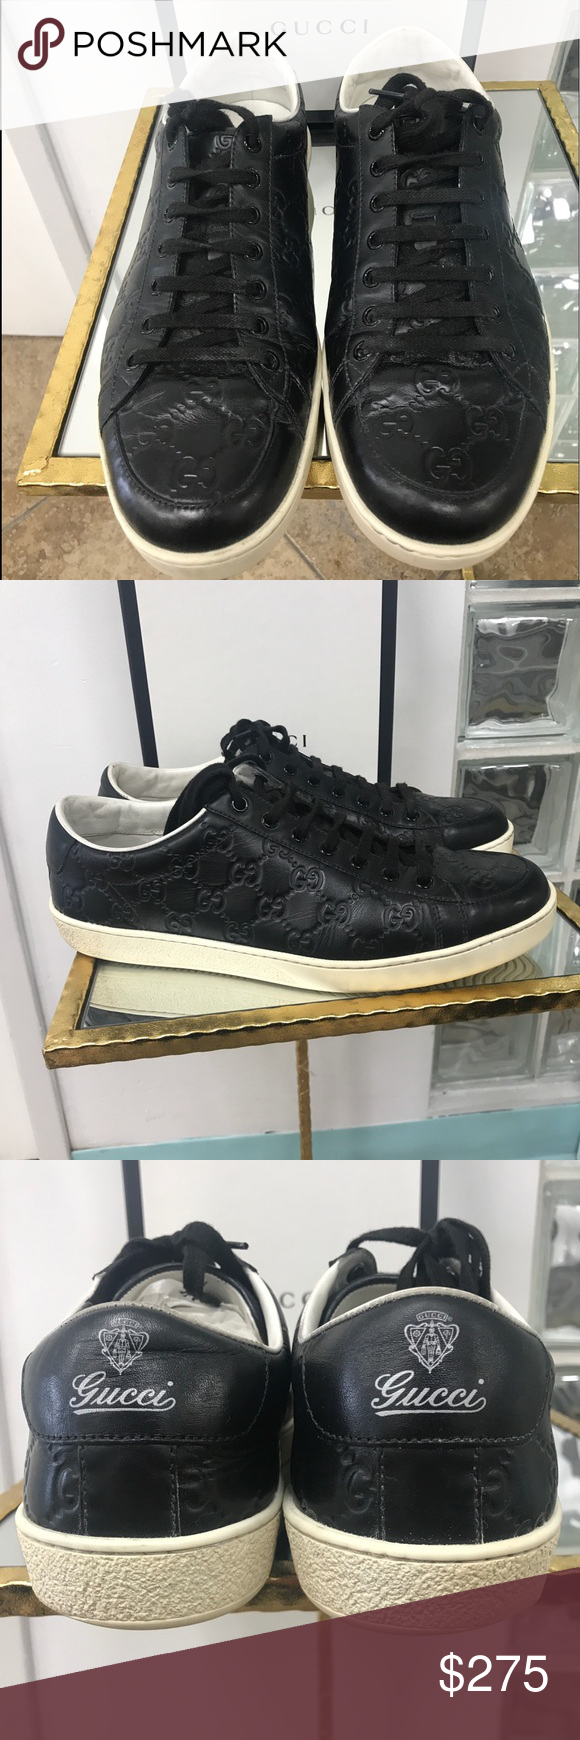 6437c1d6ba8 🔥Gucci Snickers 🔥 💯% Authentic Italian color black upper leather with GG  imprint